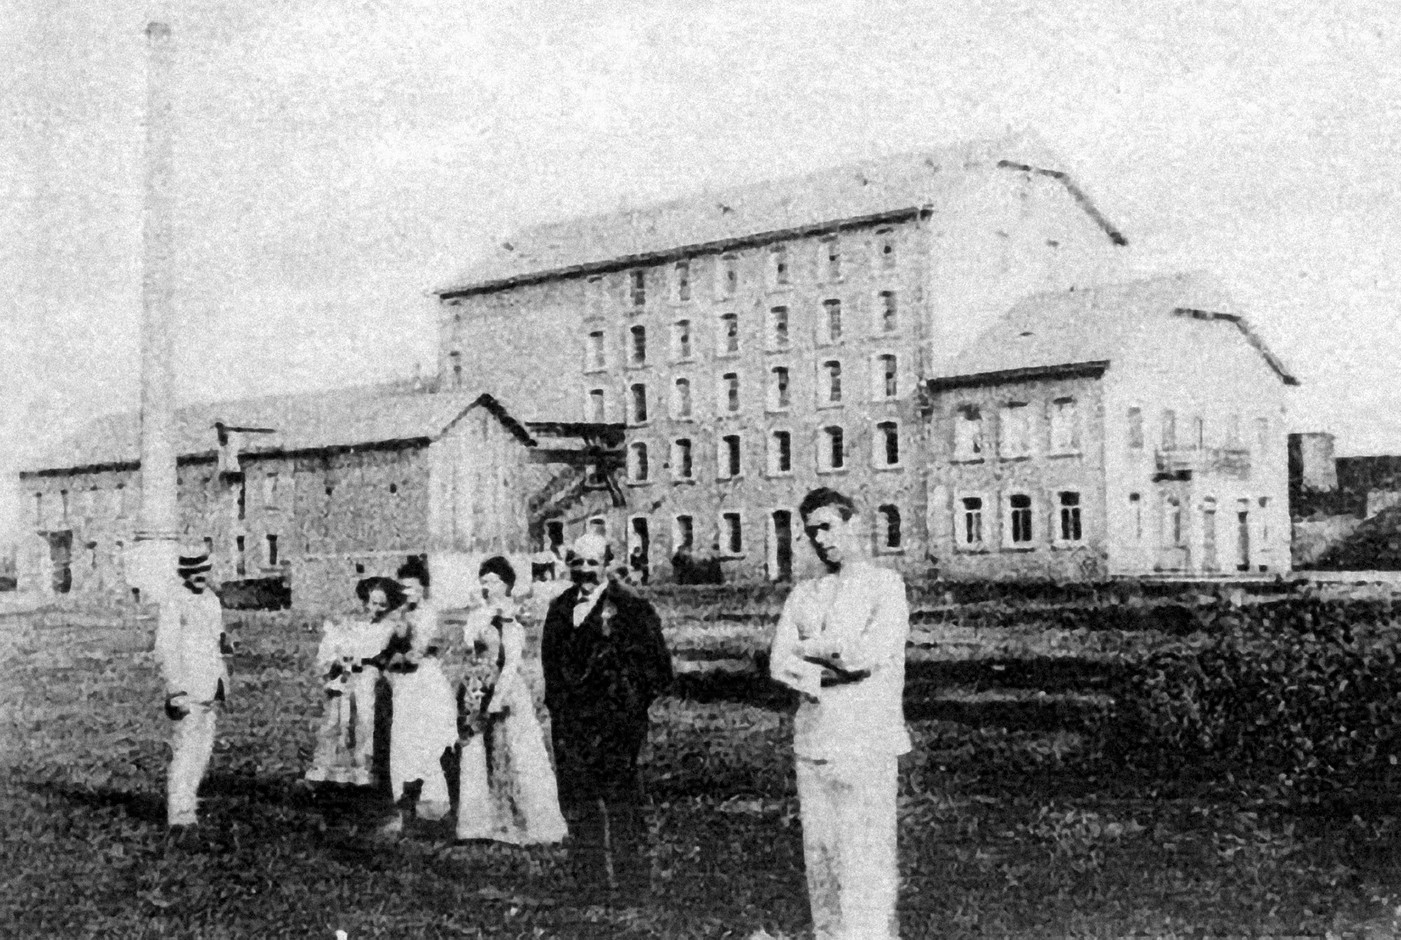 The Kleinbettigen mills in 1901. They were still owned by the Fribourg and Wagner families. Photo: Kleinbettigen mills